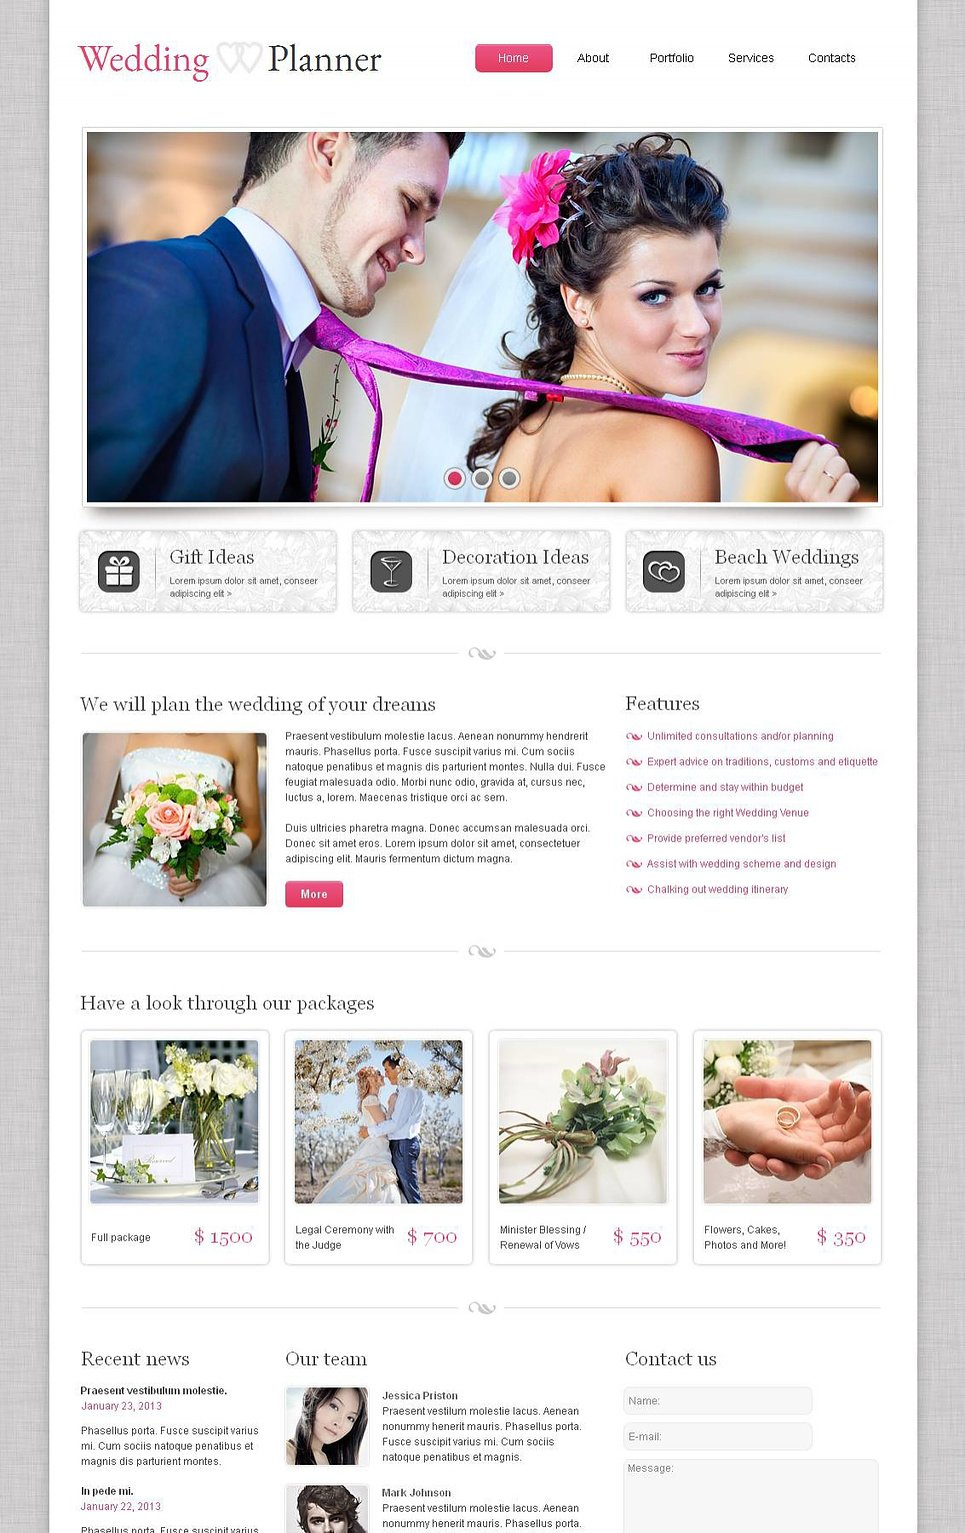 Wedding Planner Website Template with Photo Gallery - image